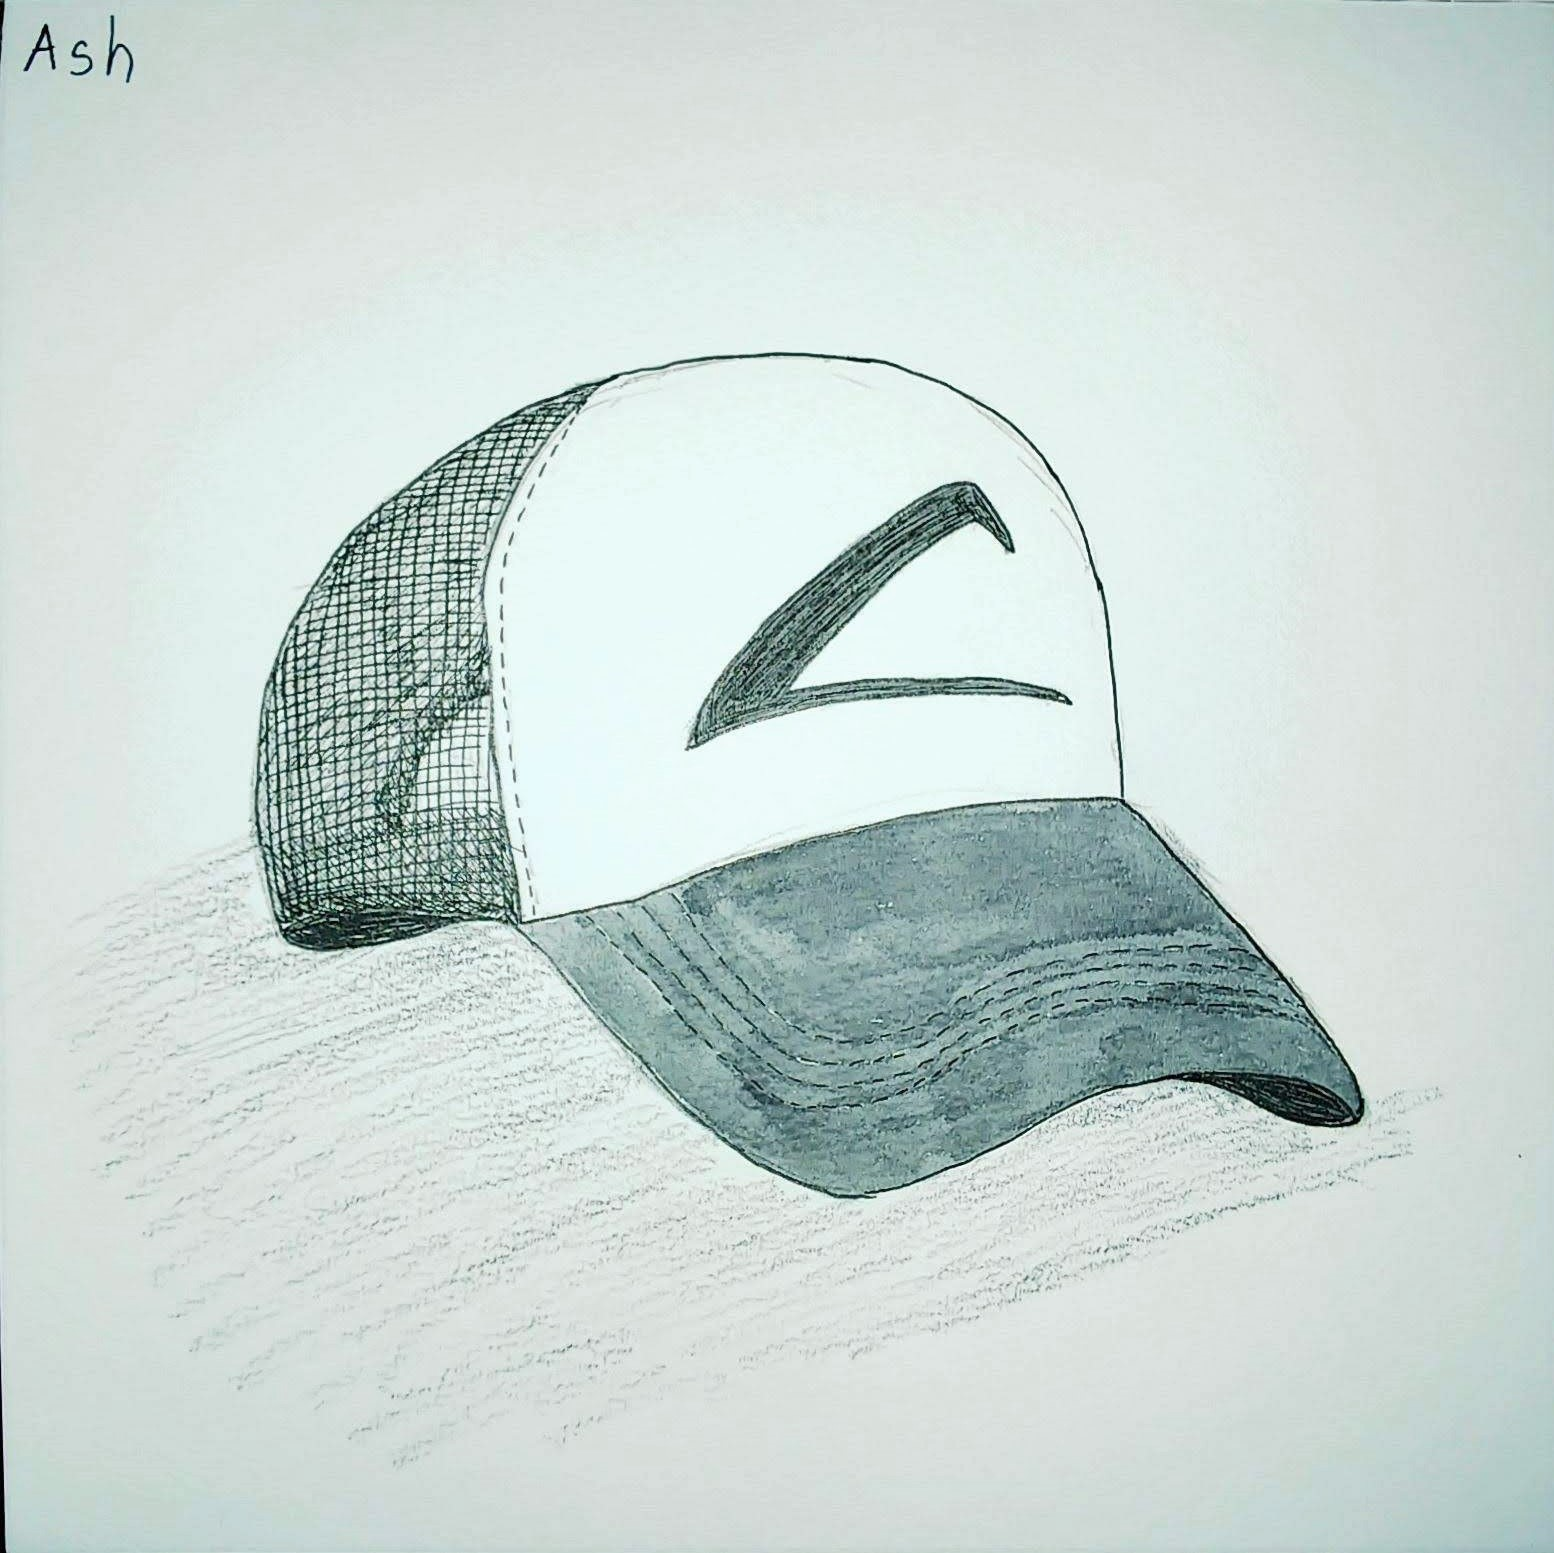 Ash (Inktober 2019 – Thirteen)